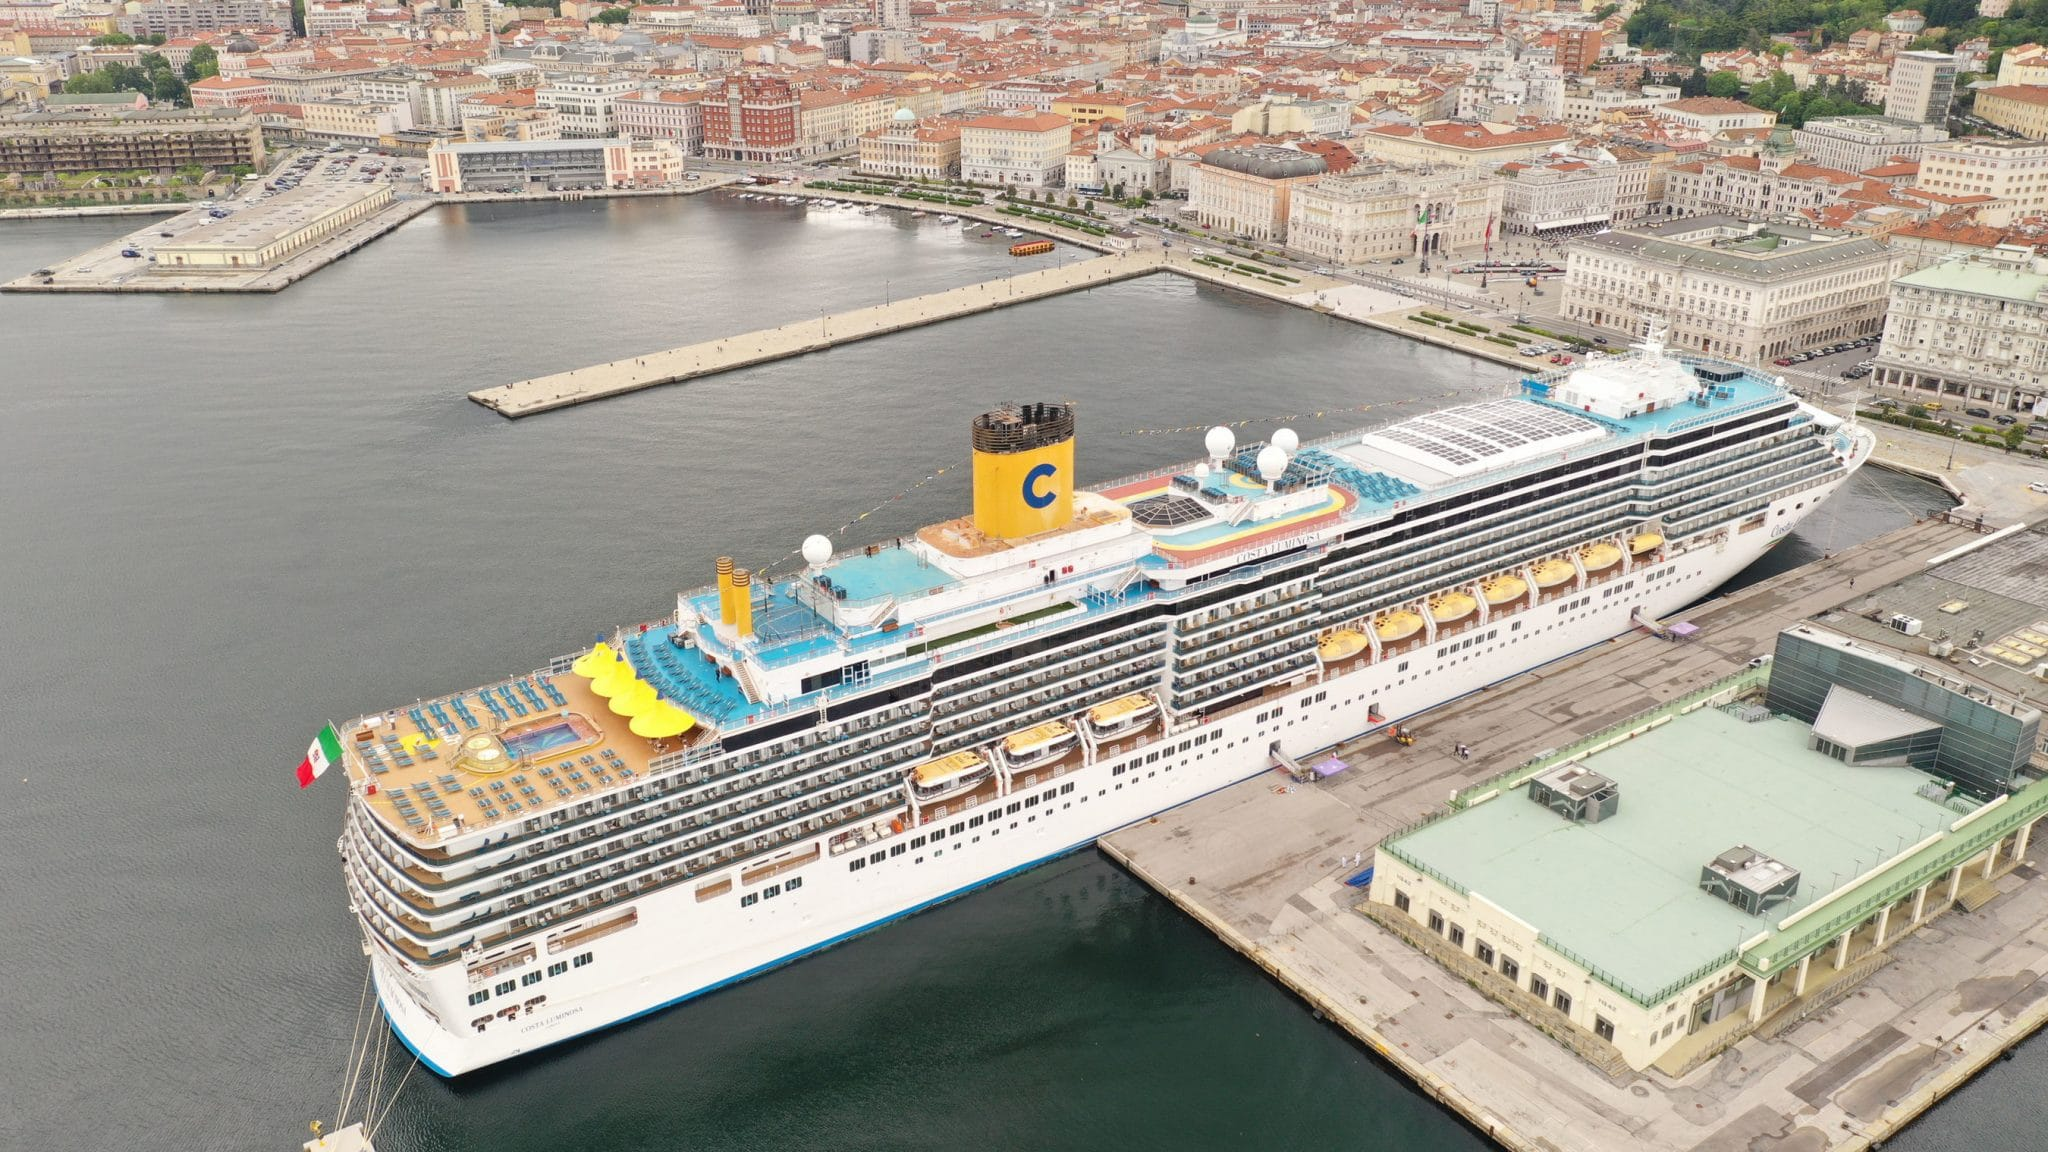 Cruise Line Resumes Cruises on Second Ship